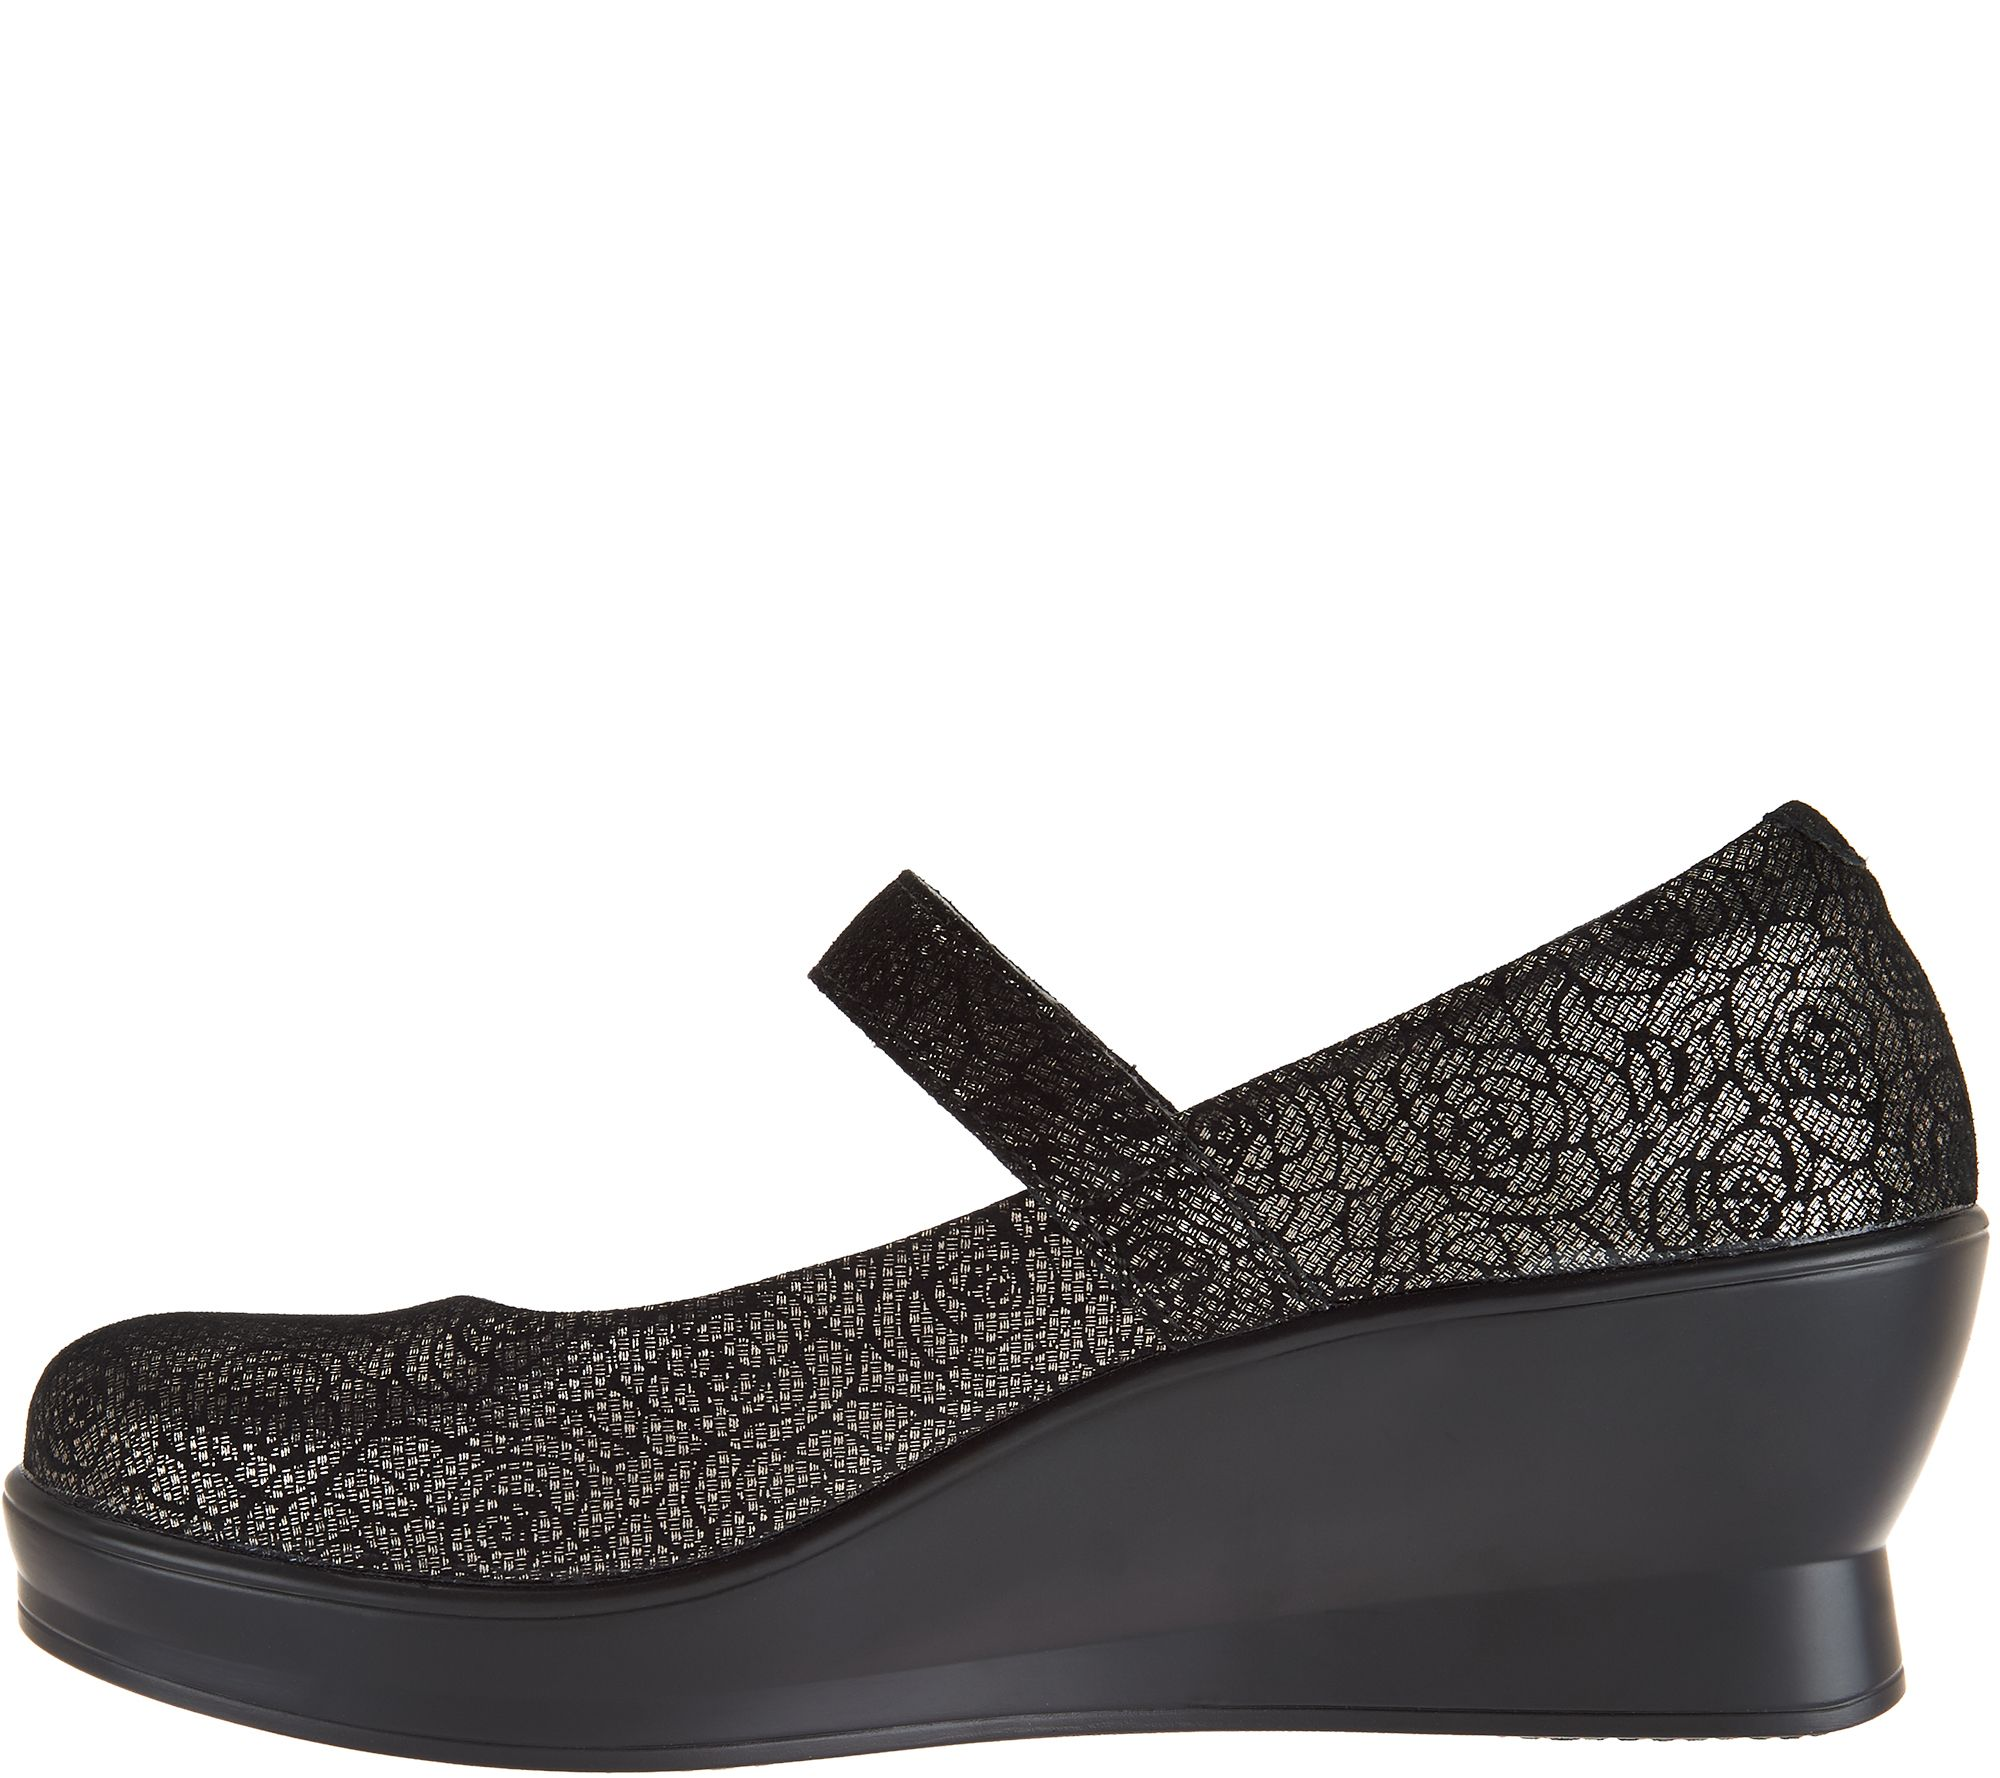 Alegria Leather Mary Janes - Flair limited edition with paypal for sale p5Tdh